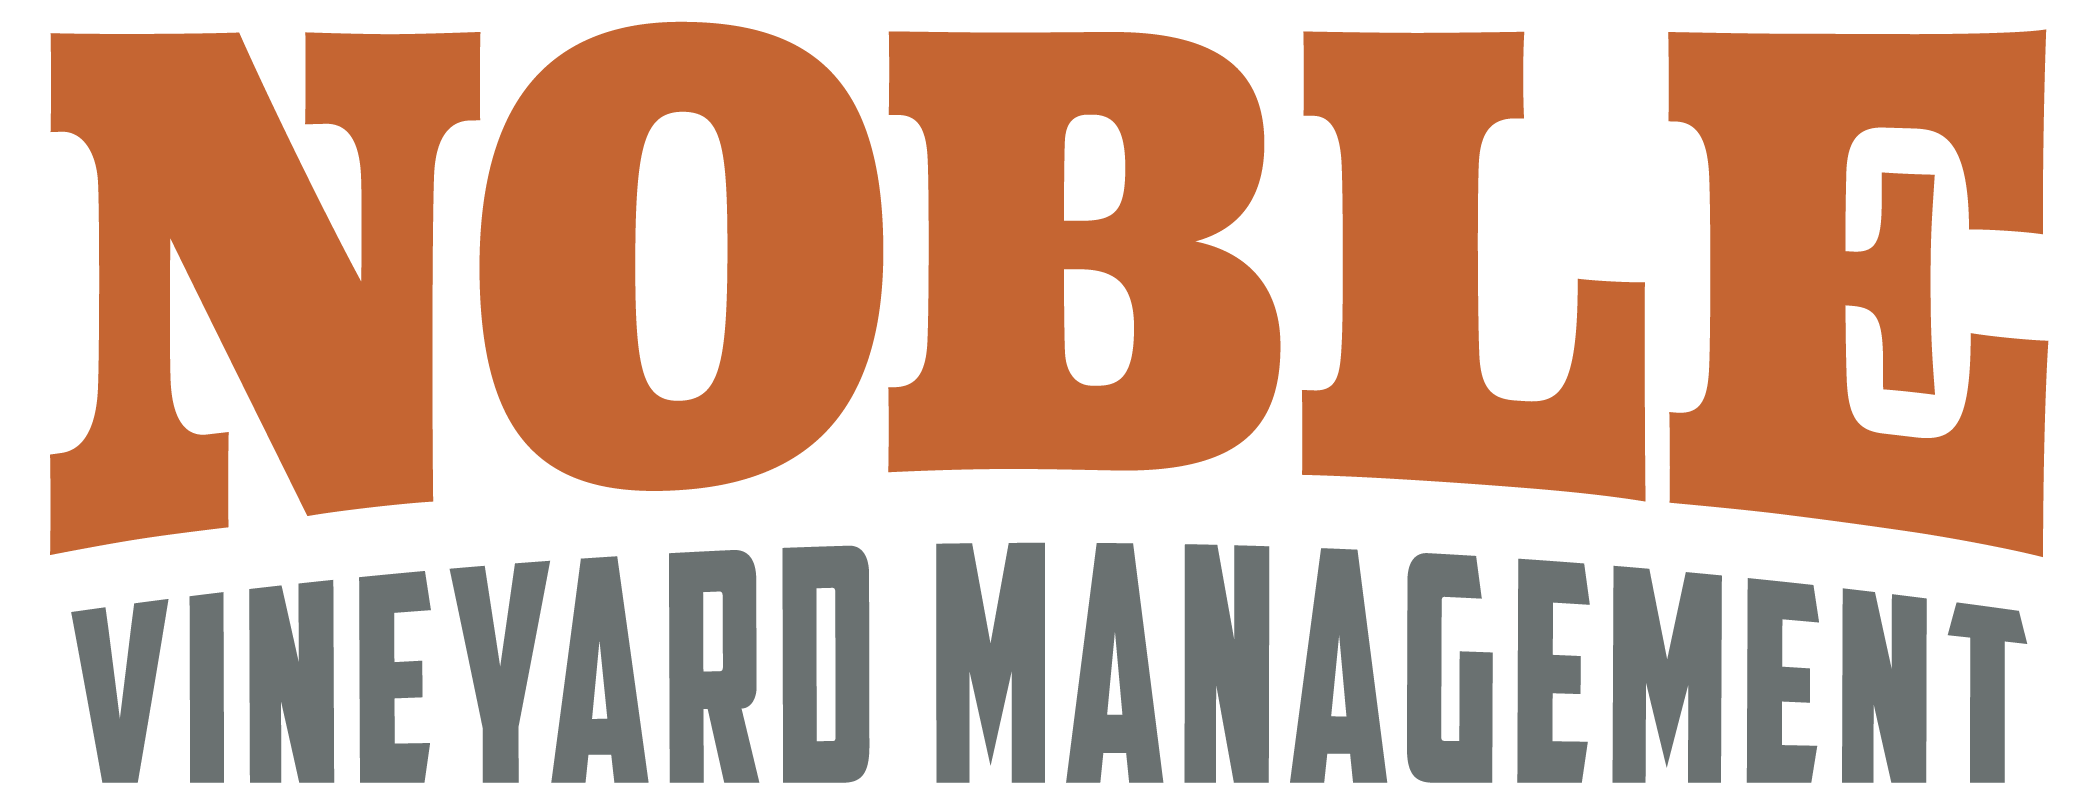 Noble Vineyard Management logo